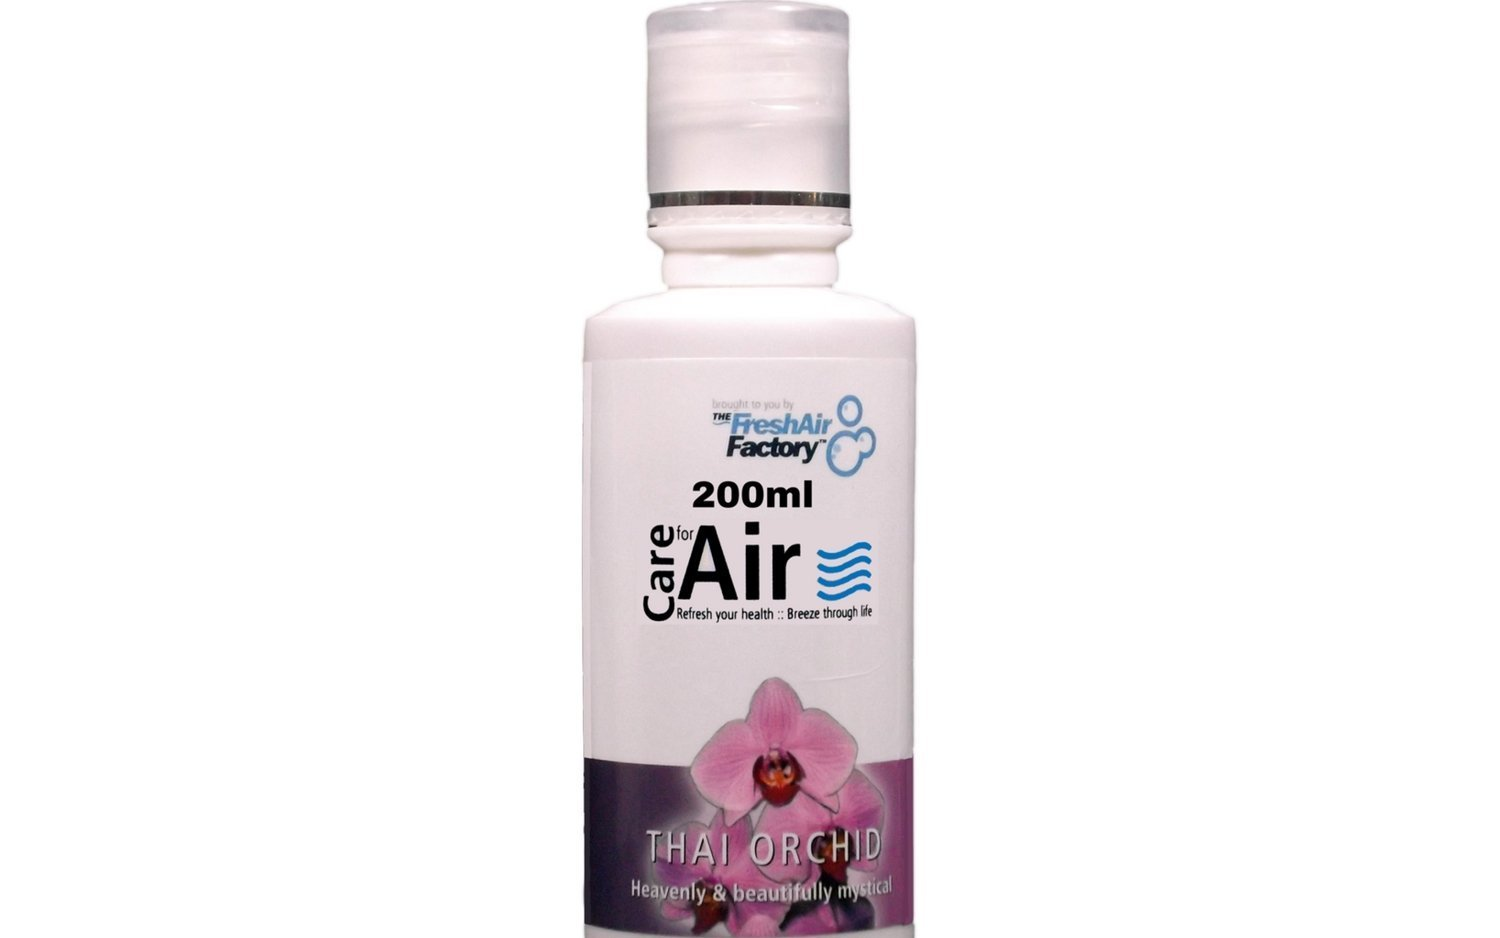 AIR PURIFIER FRAGRANCE FOR HOME - CareforAir Thai Orchid Fresh Floral Scent 200ml - USE IN REVITALIZERS, IONIZERS, HUMIDIFIERS - 100% Product Satisfaction Guarantee